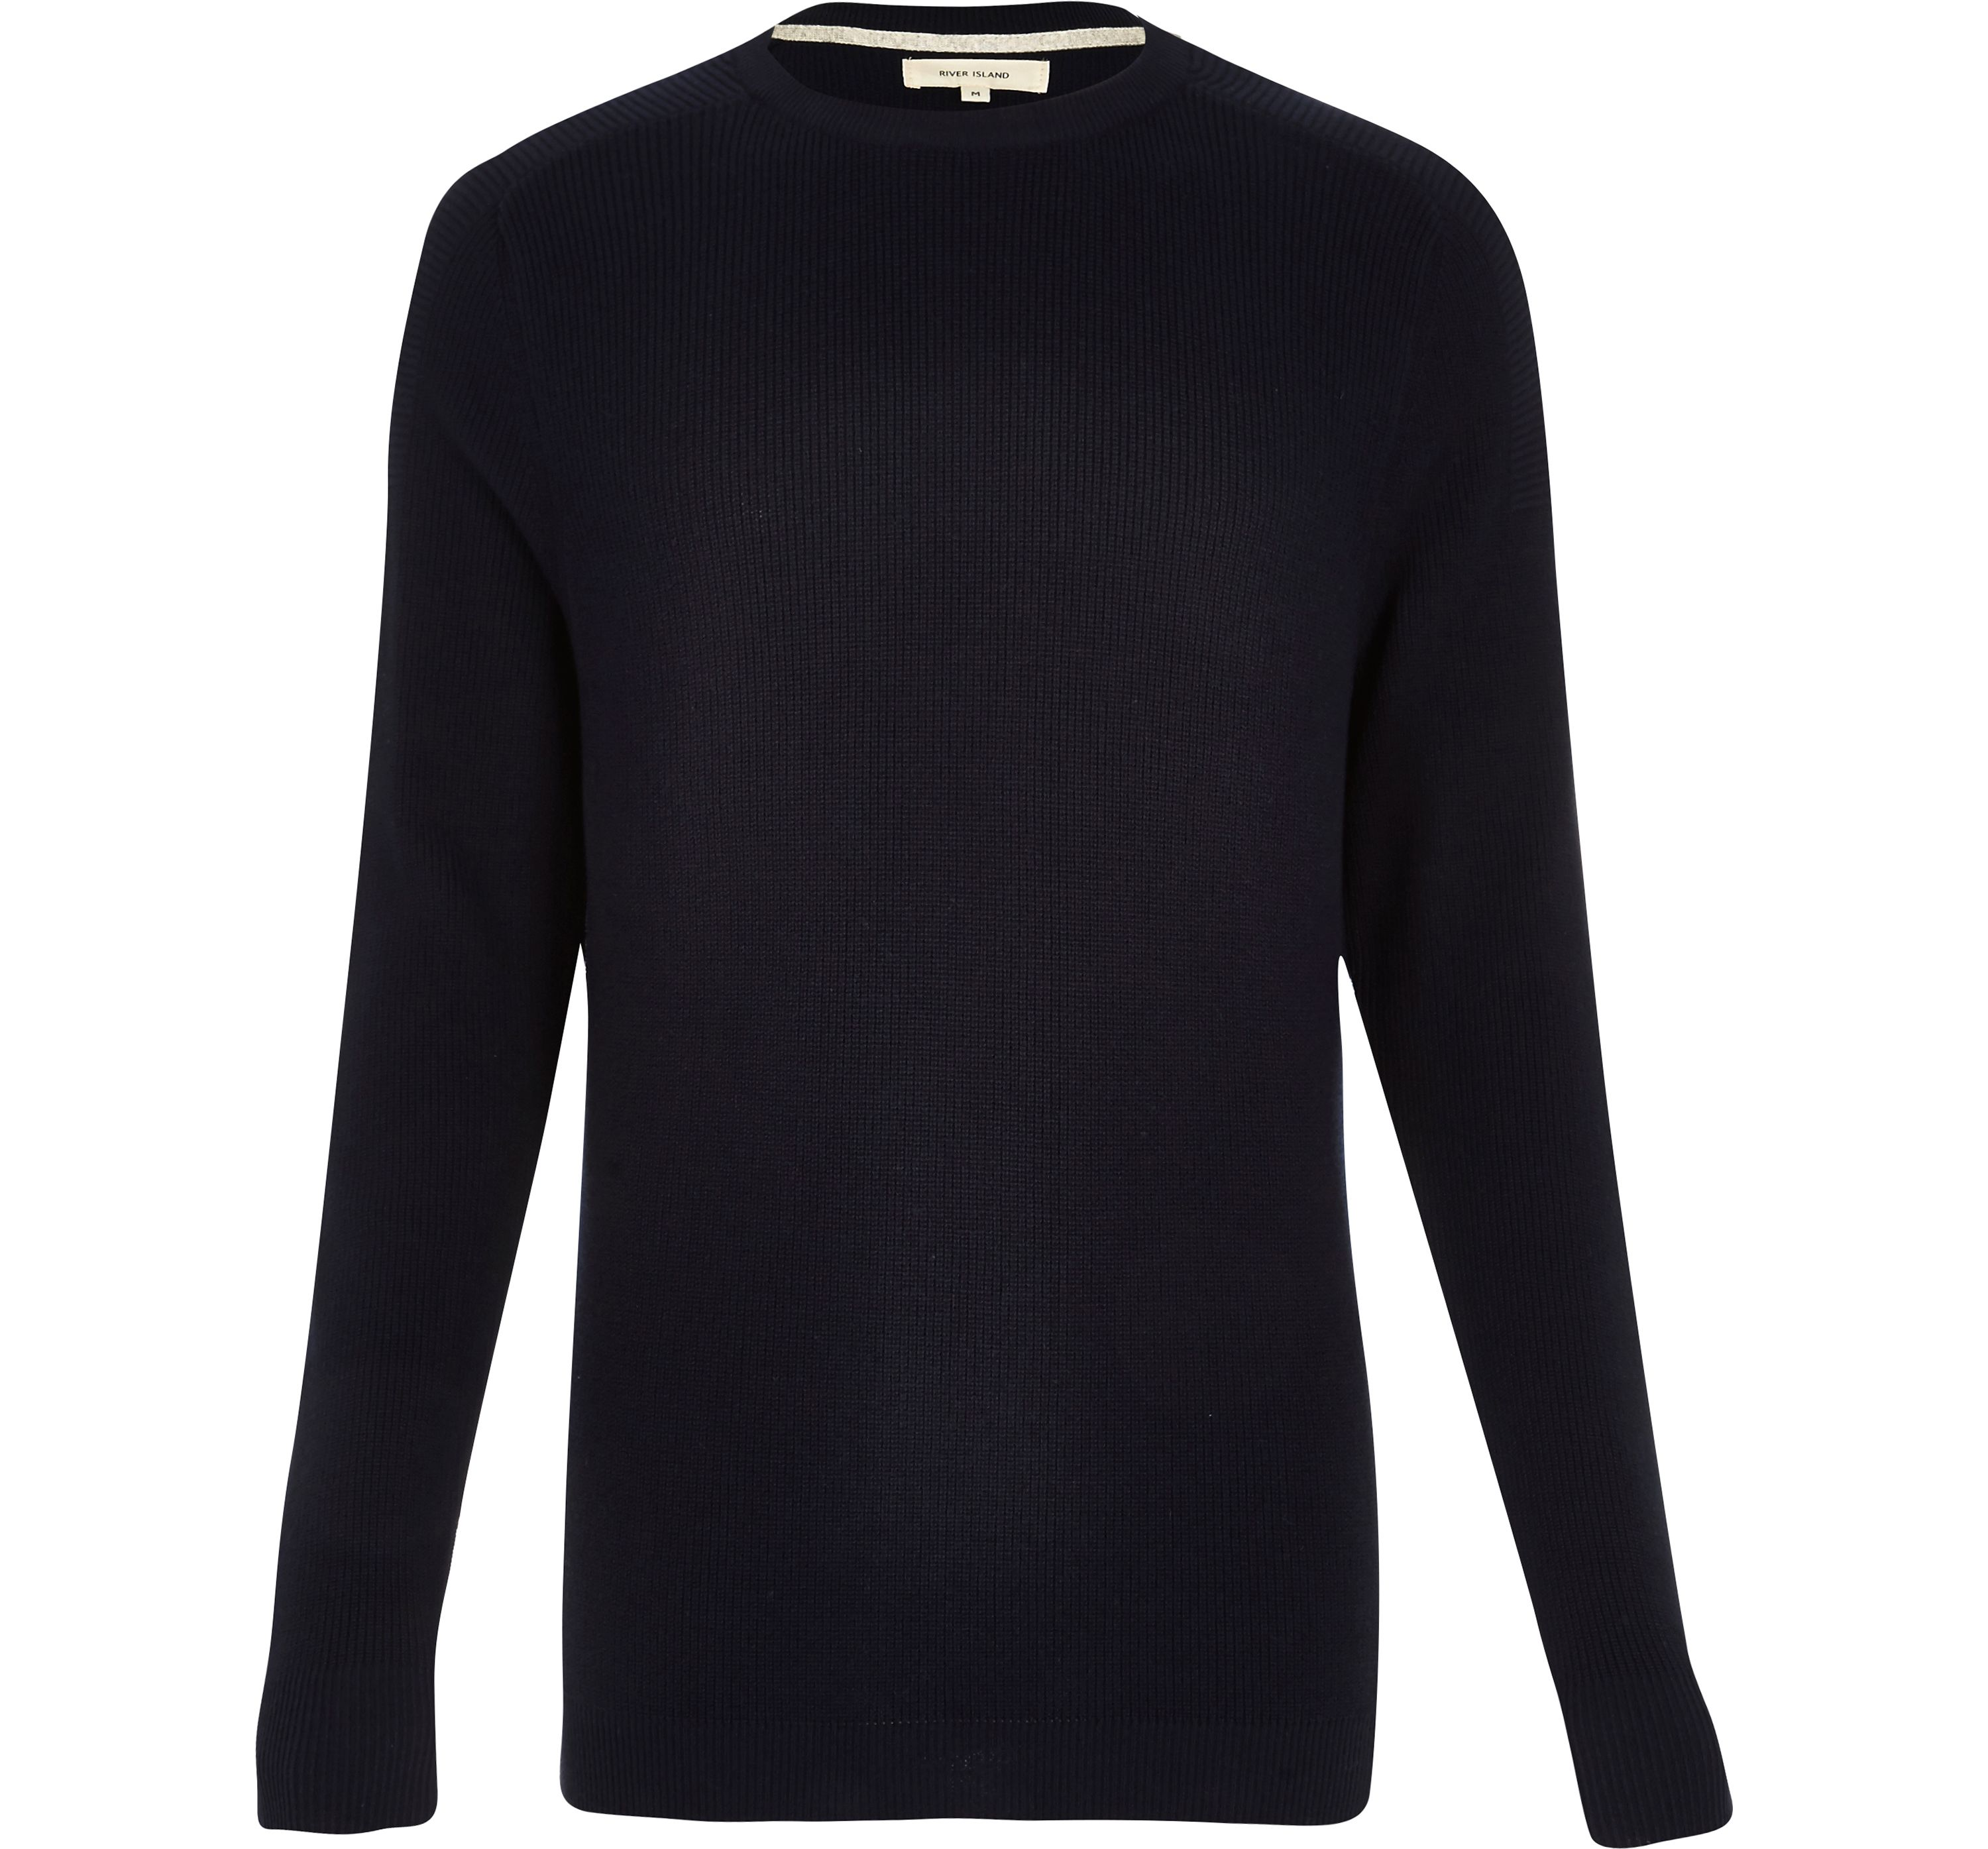 River Island Mens Navy textured knitted crew neck jumper